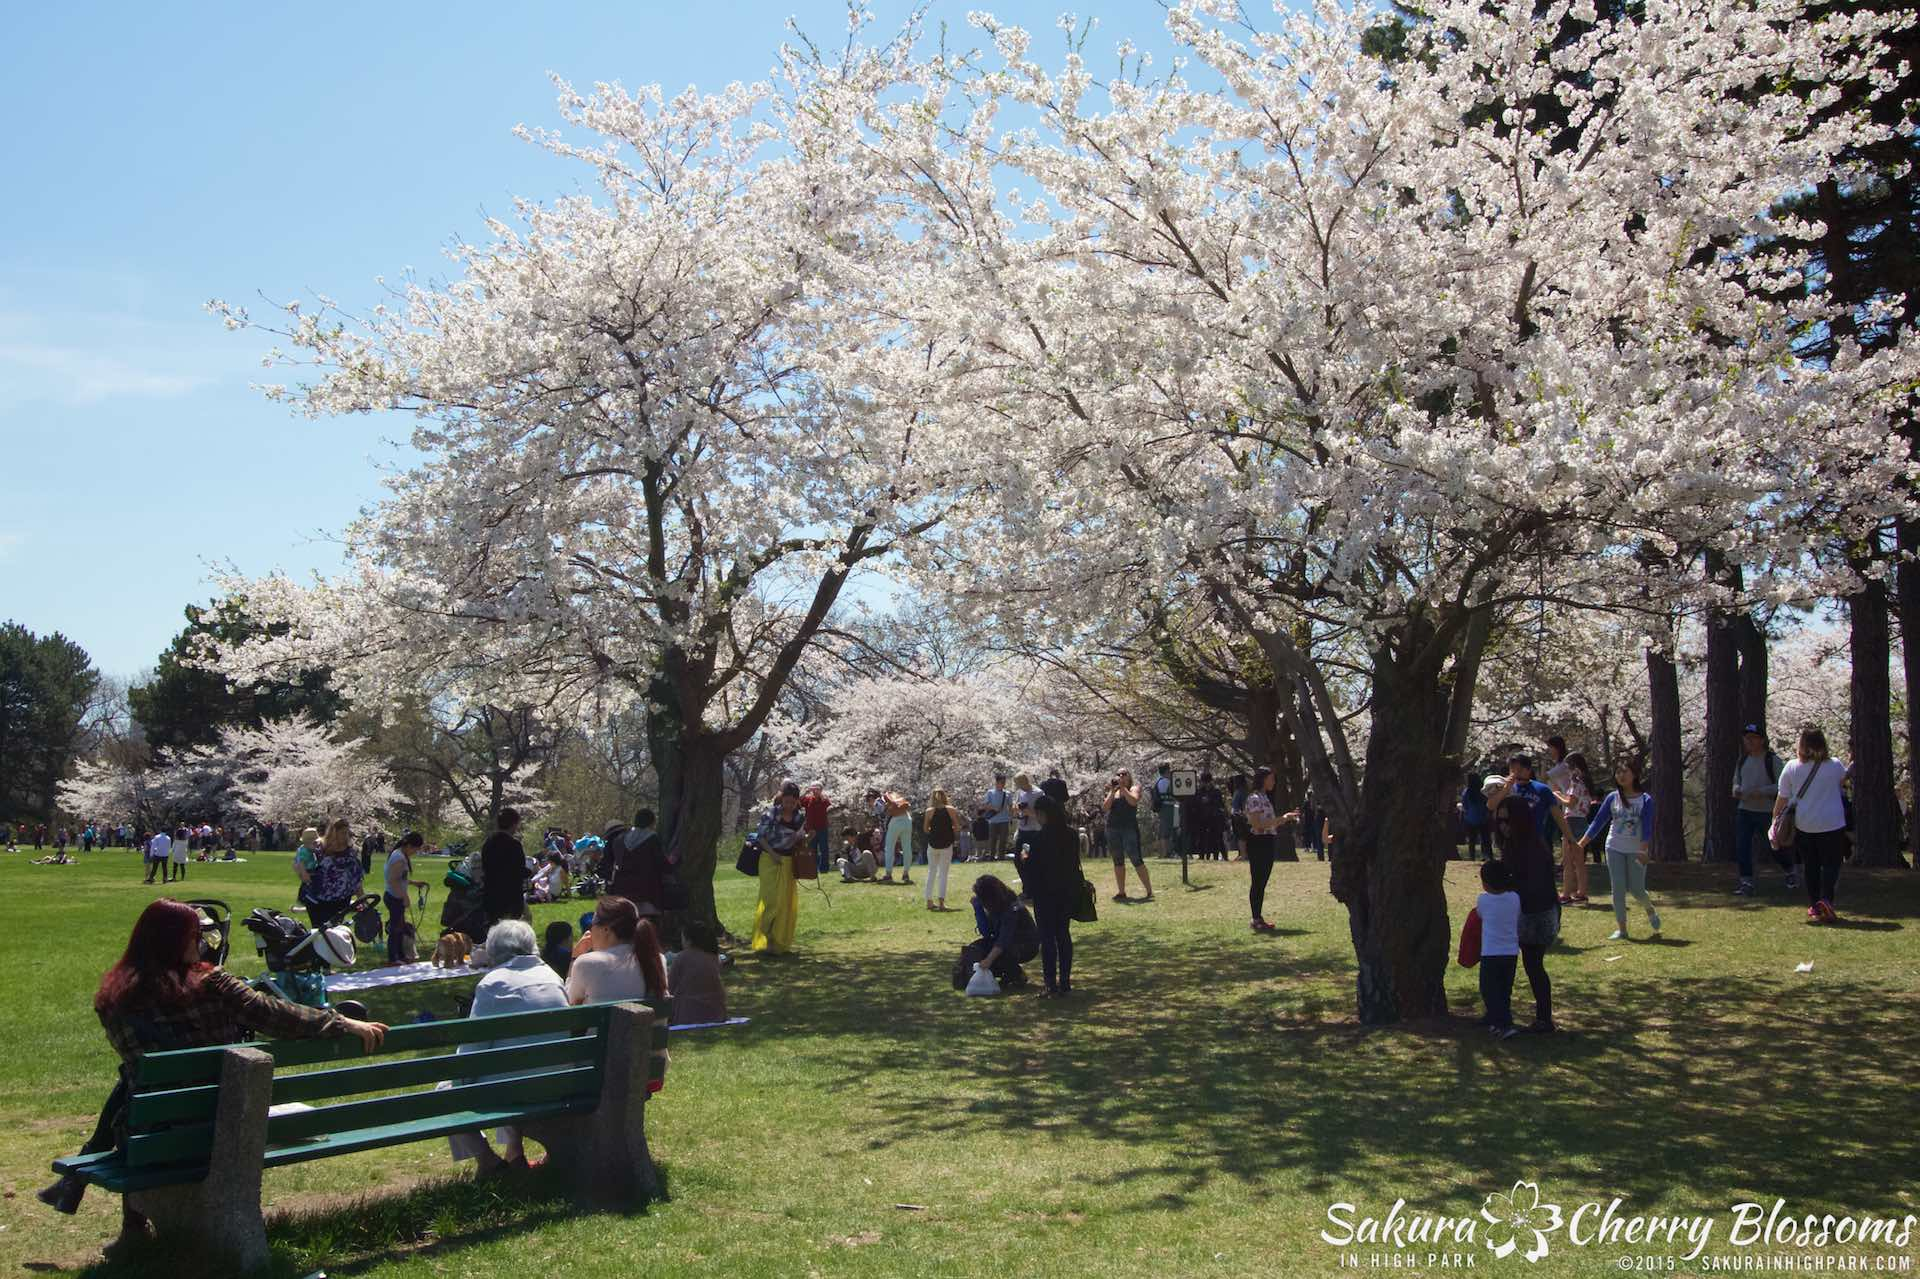 SakurainHighPark-May715-1911.jpg